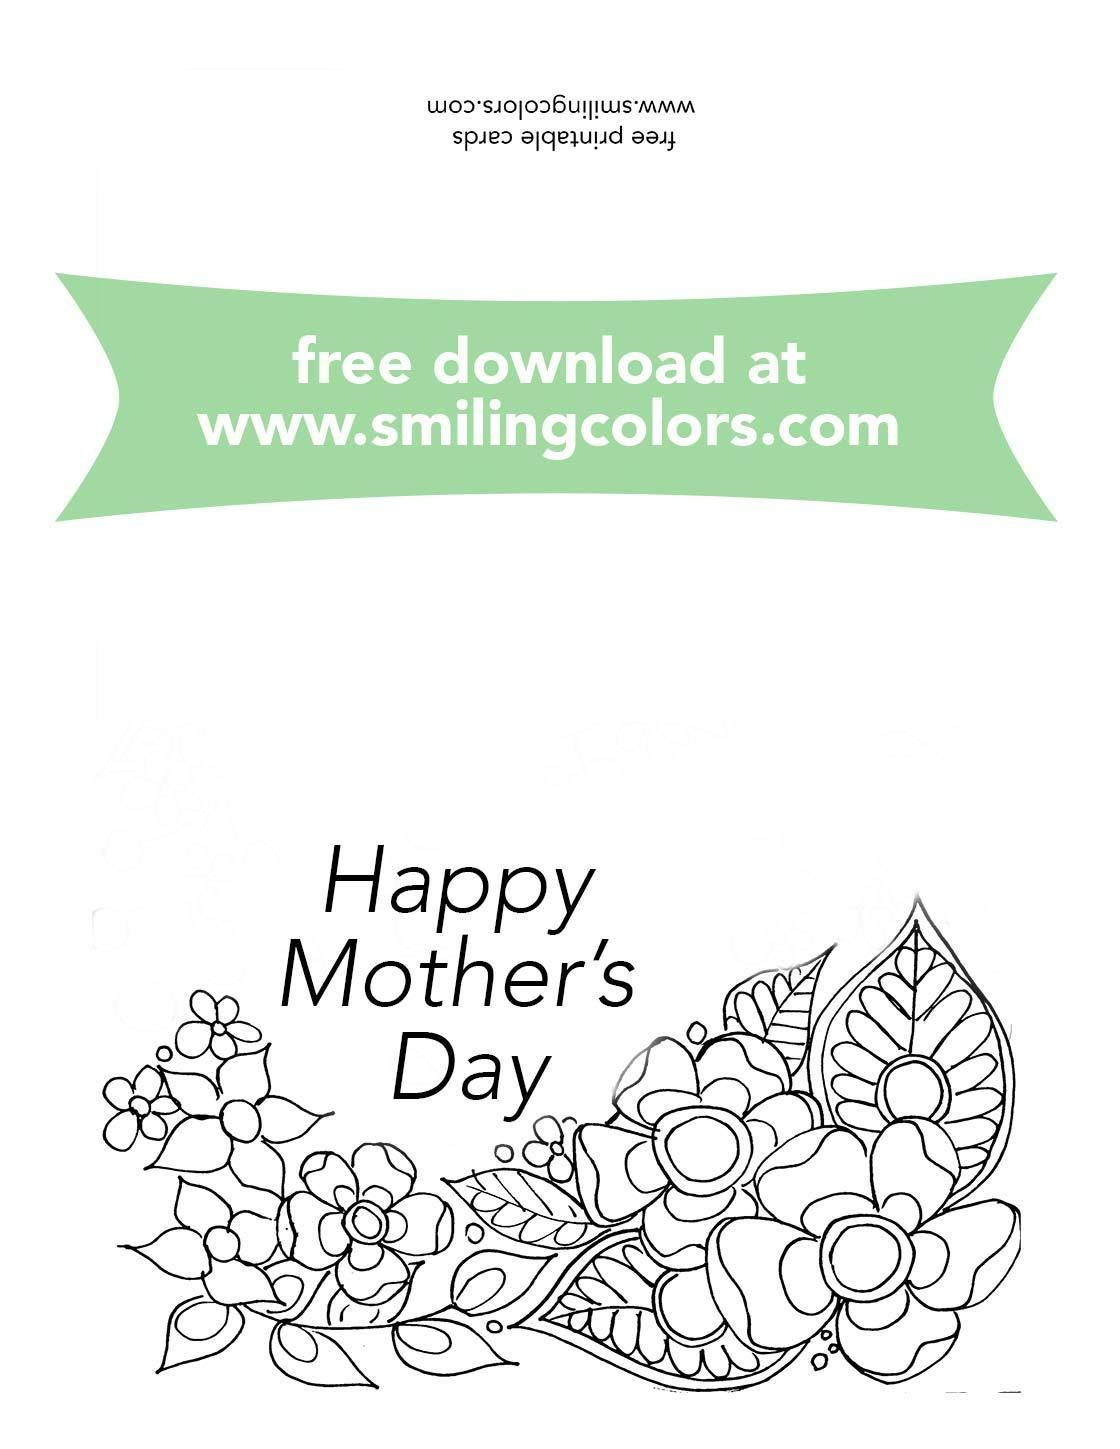 Mothers Day Coloring Cards Free To Print And Color Now Mothers Day Coloring Cards Free Mothers Day Cards Mothers Day Cards